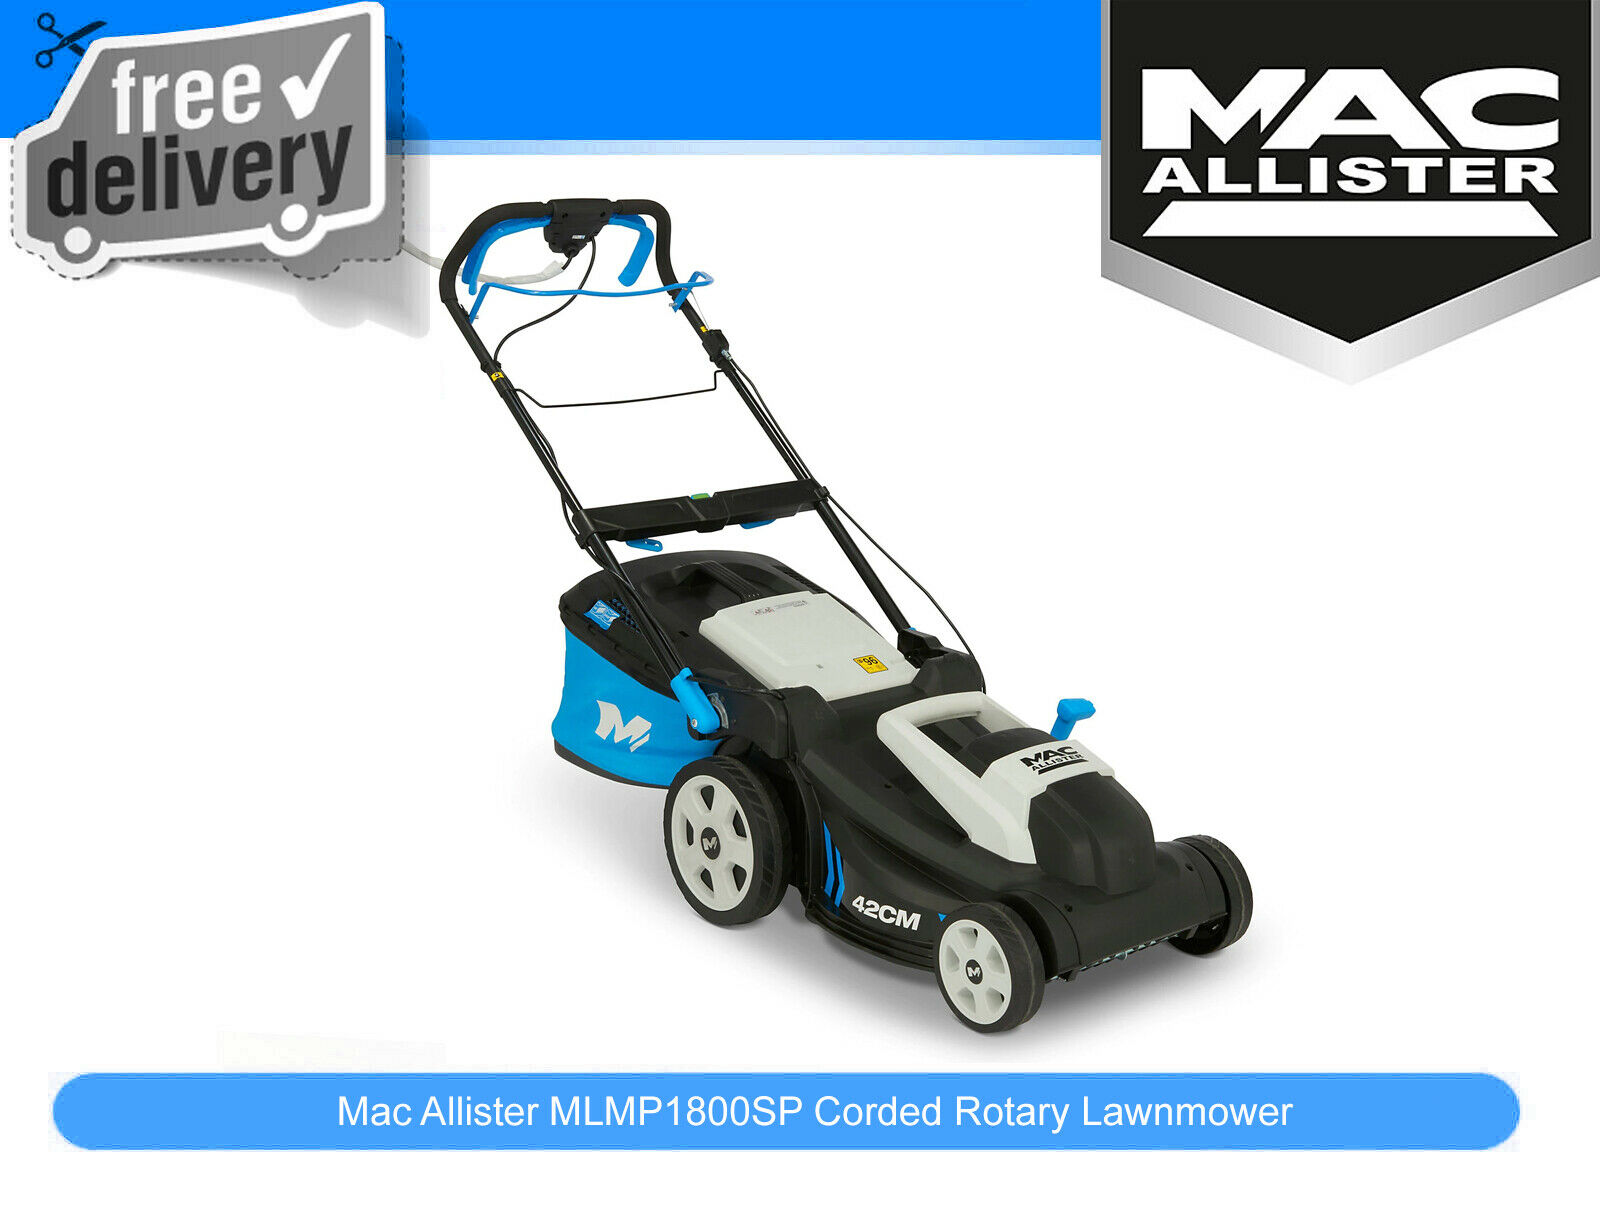 mcculloch m46 140wr petrol self propelled lawnmower 184. Black Bedroom Furniture Sets. Home Design Ideas